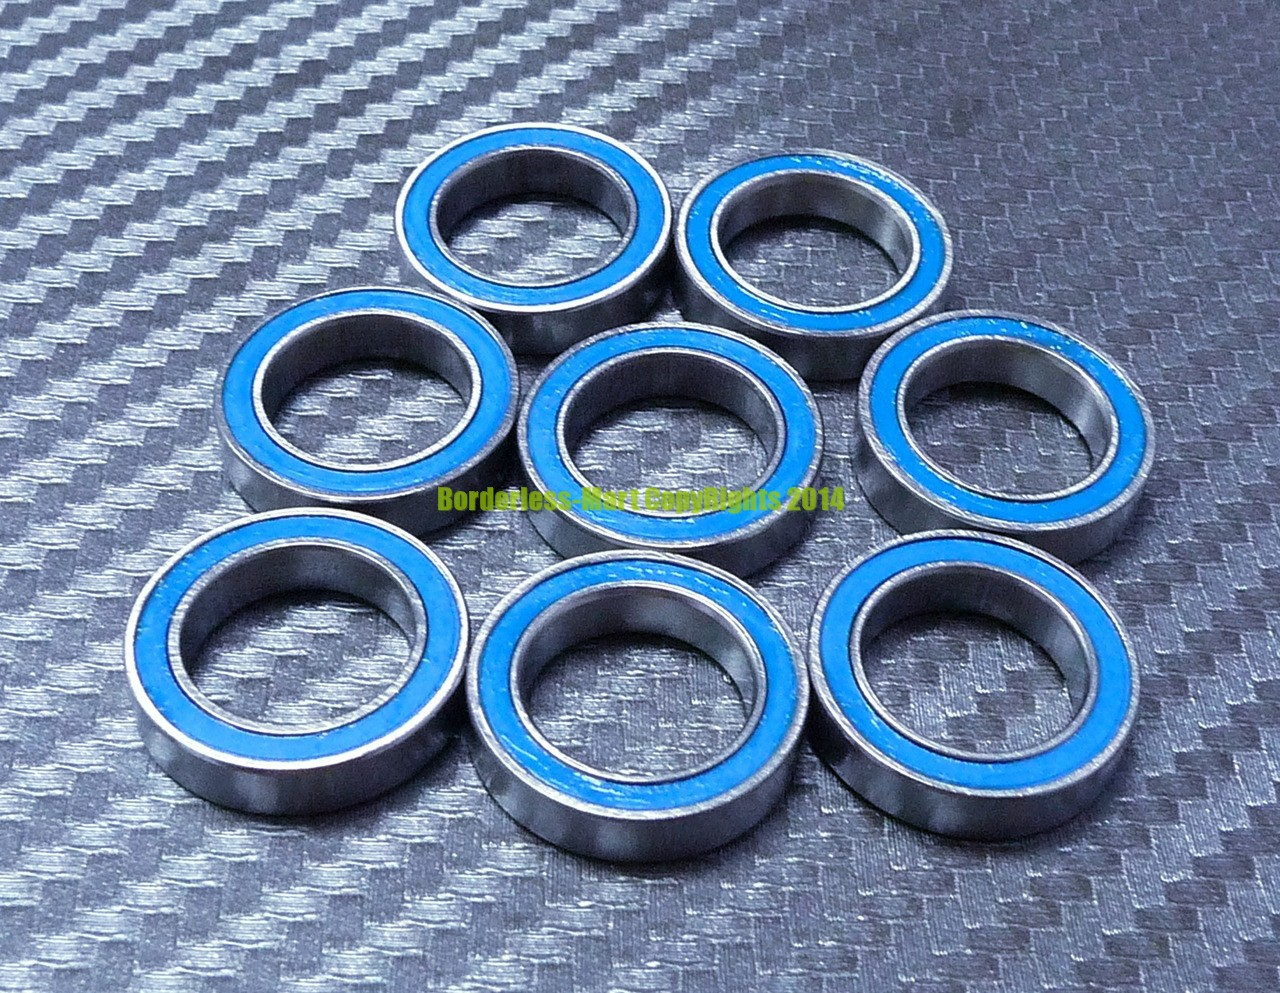 6311 2RS Bearings for ST-STC 30-40-50kw